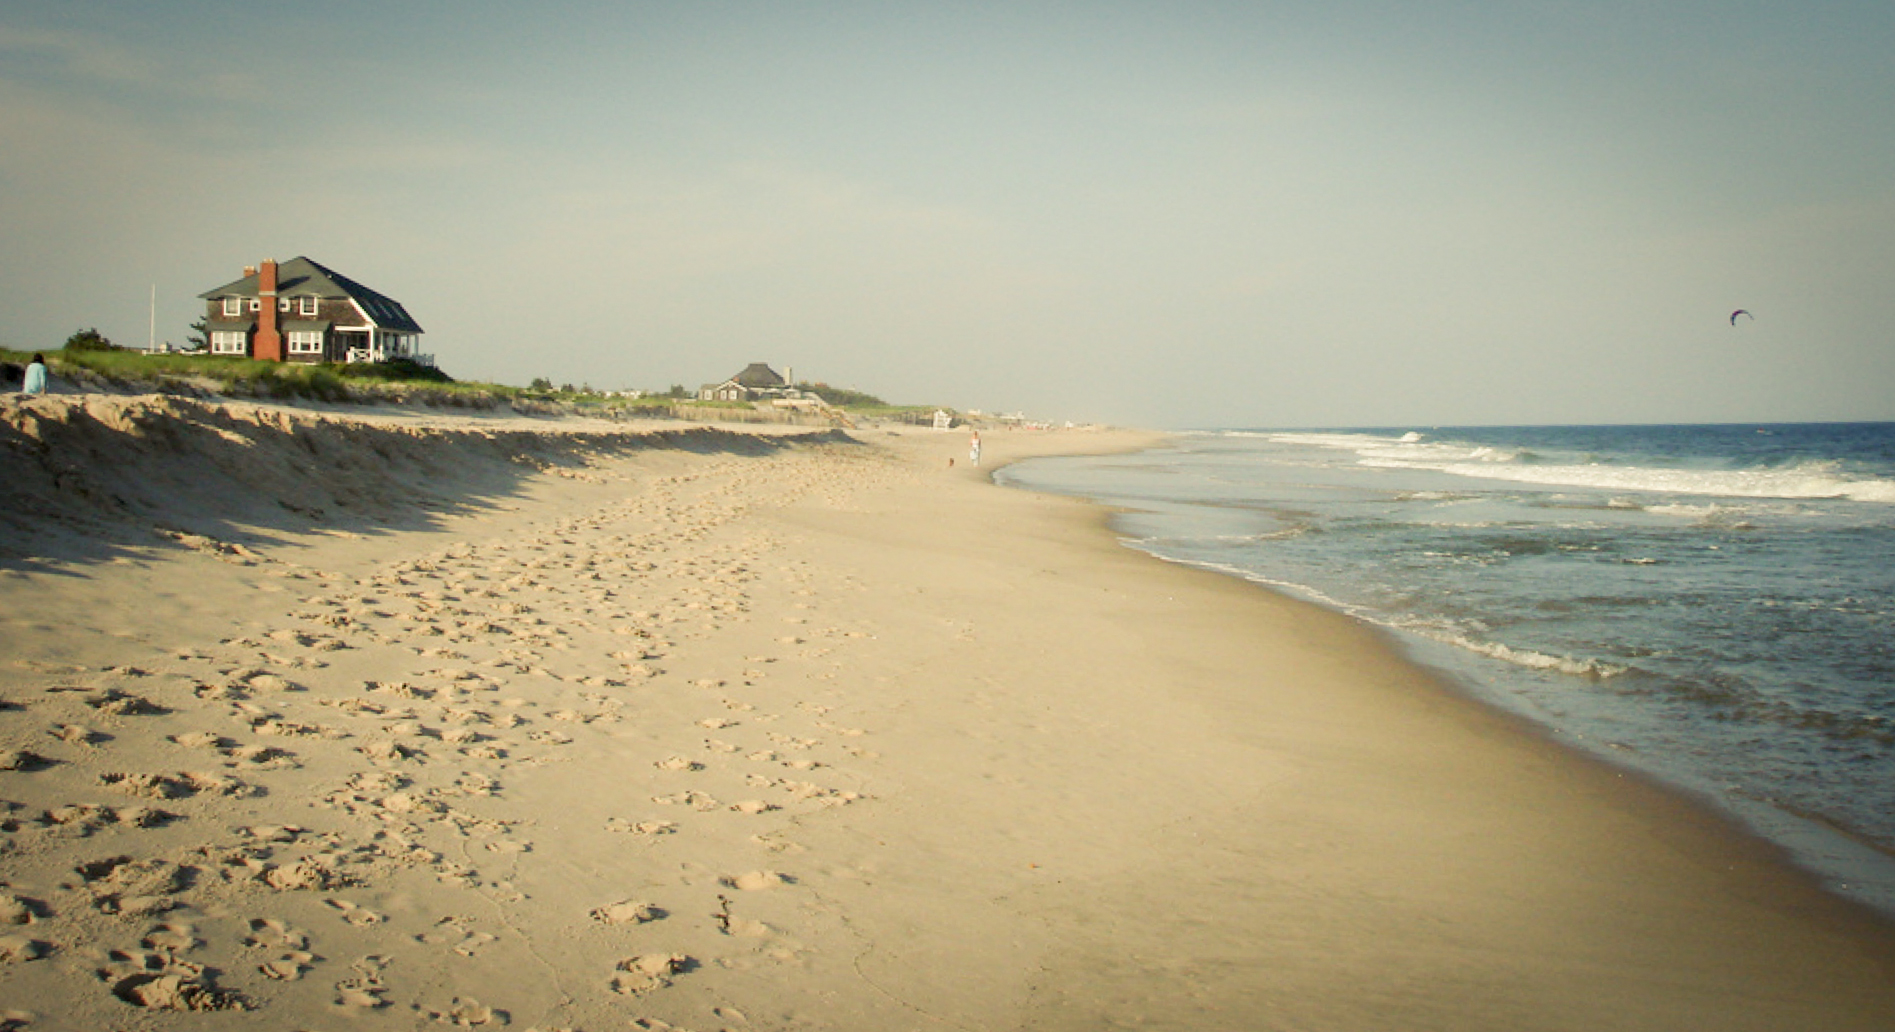 PHOTO CREDIT:  Above is a photo of Flying Point Beach, approximately the same spot where Harry and Erica had their romantic beach date. The photo is from here .